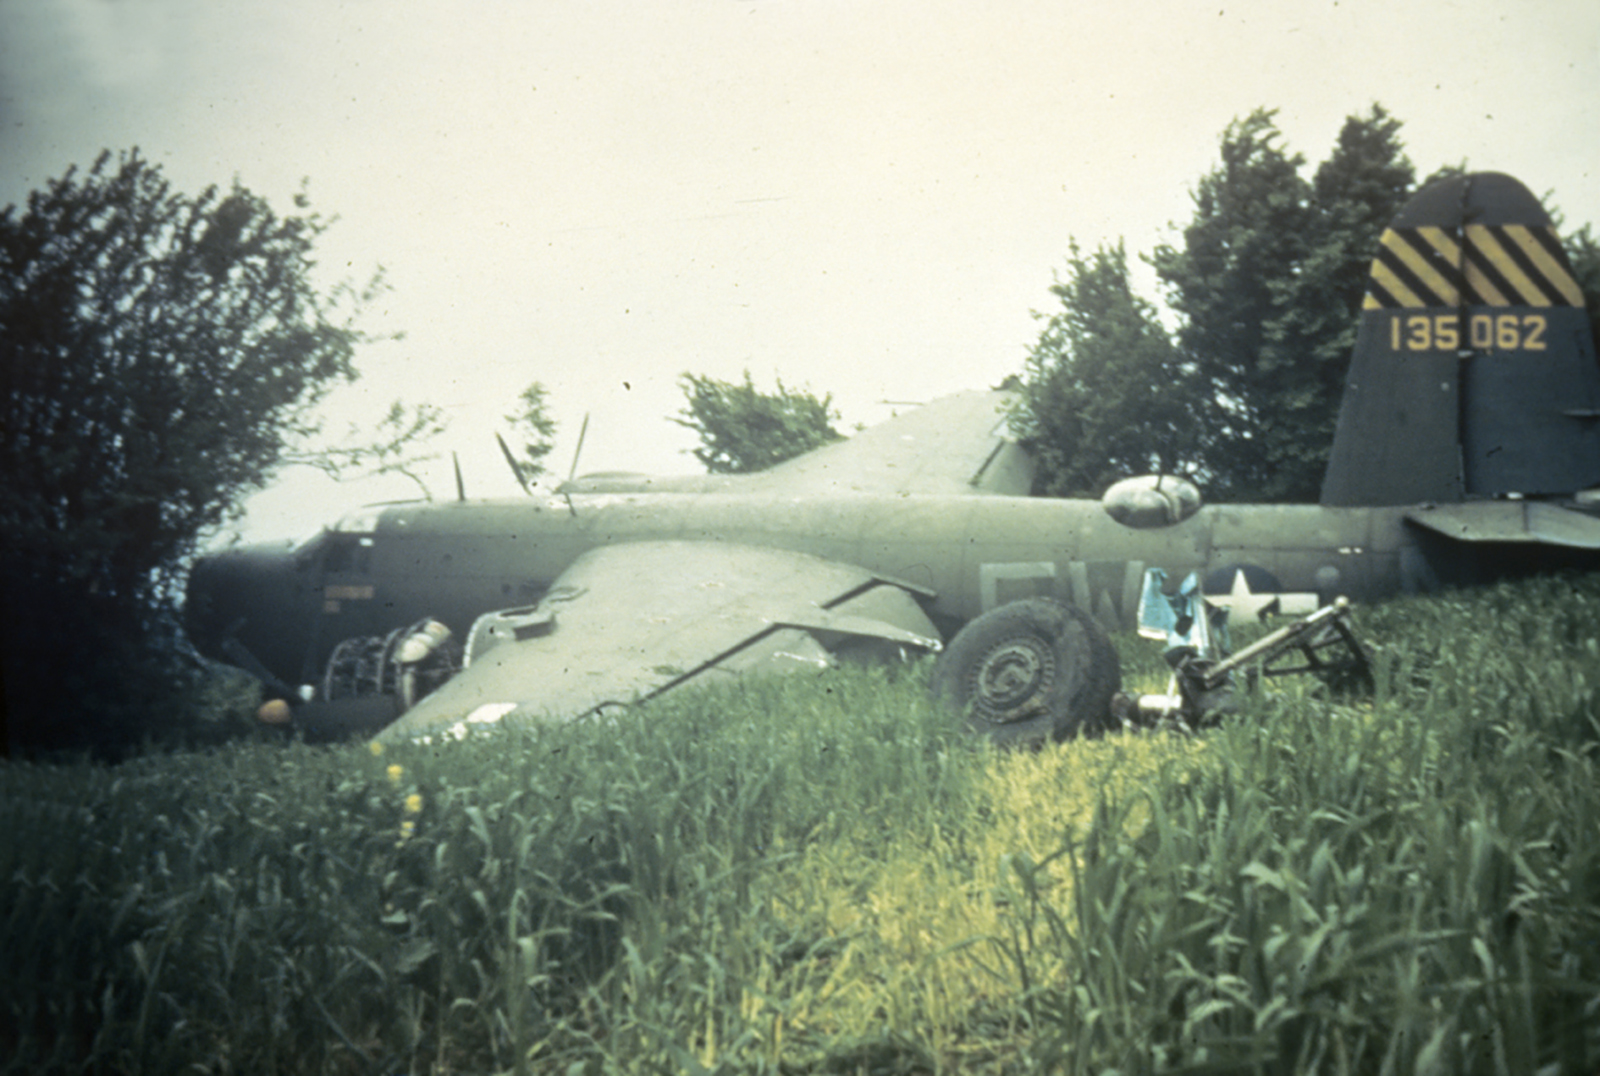 USAAF 41 35062 B 26C Marauder 387BG556BS FWN Lucky Lady w off after take off crash England 25 May 1944 01